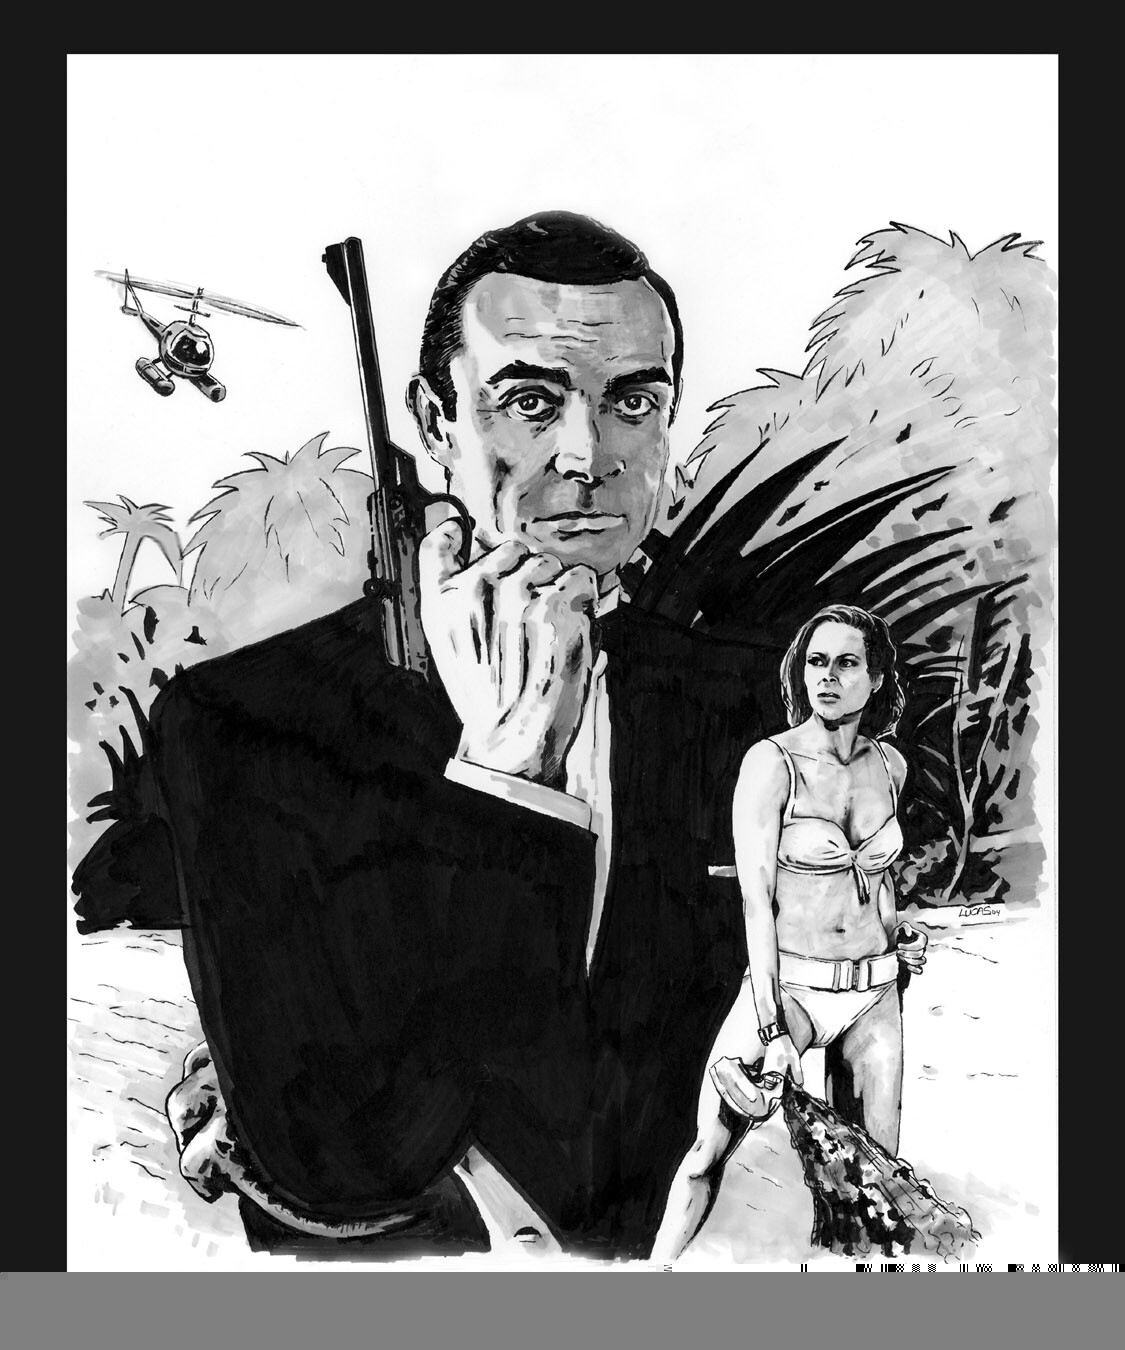 James Bond/ Dr. No Commission